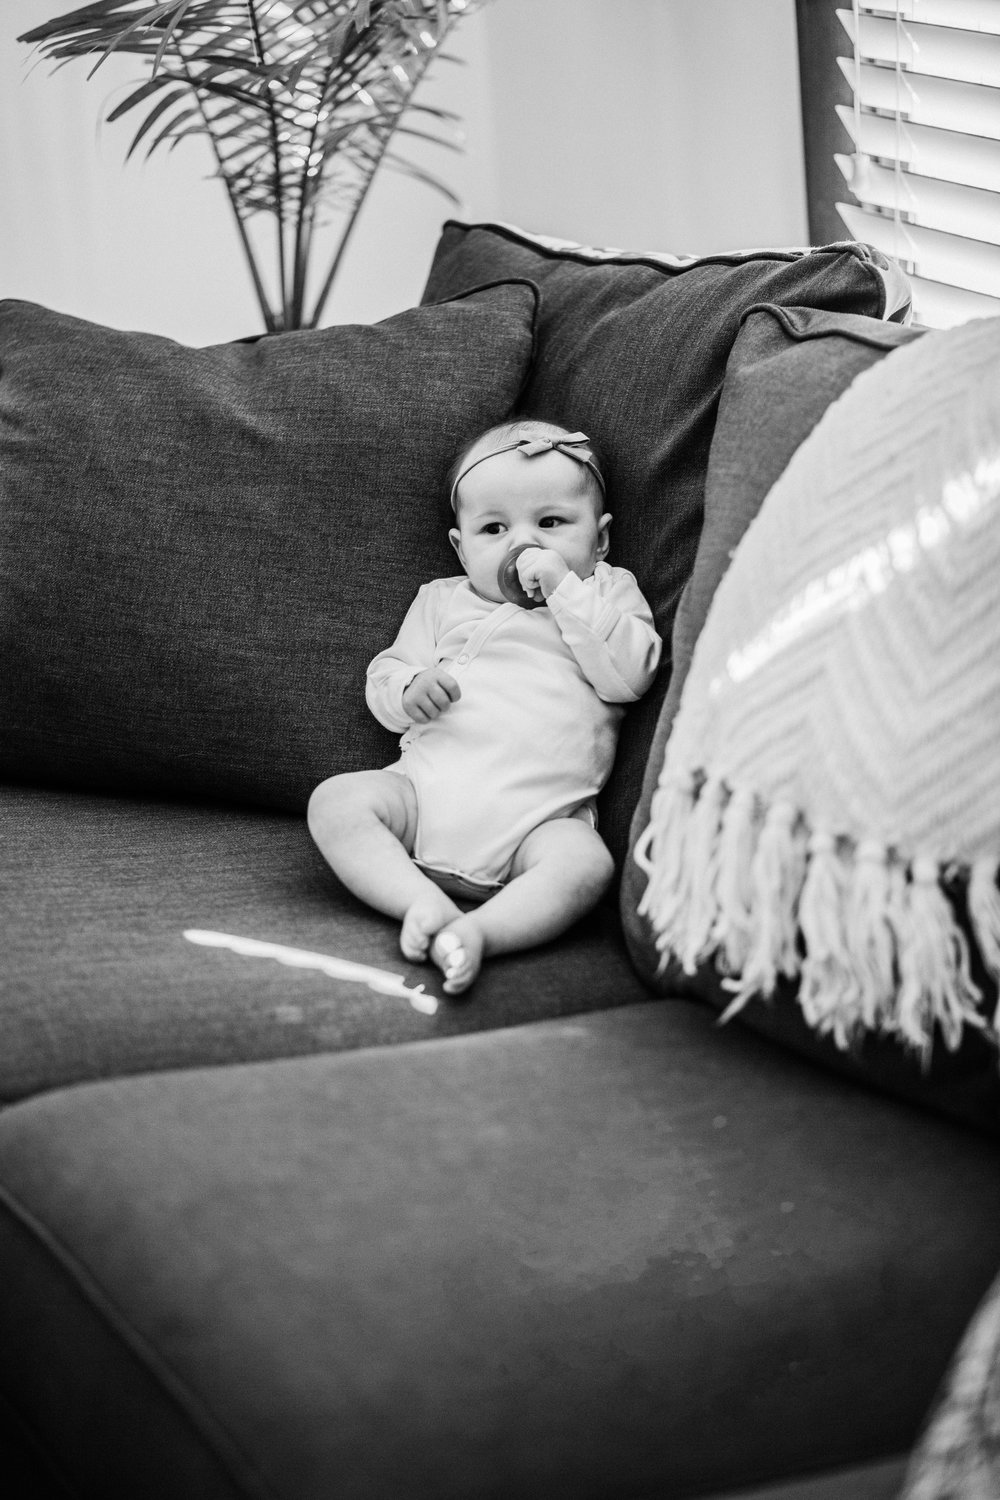 st louis lifestyle photographer, missouri lifestyle photographer, st louis lifestyle photography, missouri newborn photographer, lifestyle photo ideas, st louis newborn photographer, newborn photos